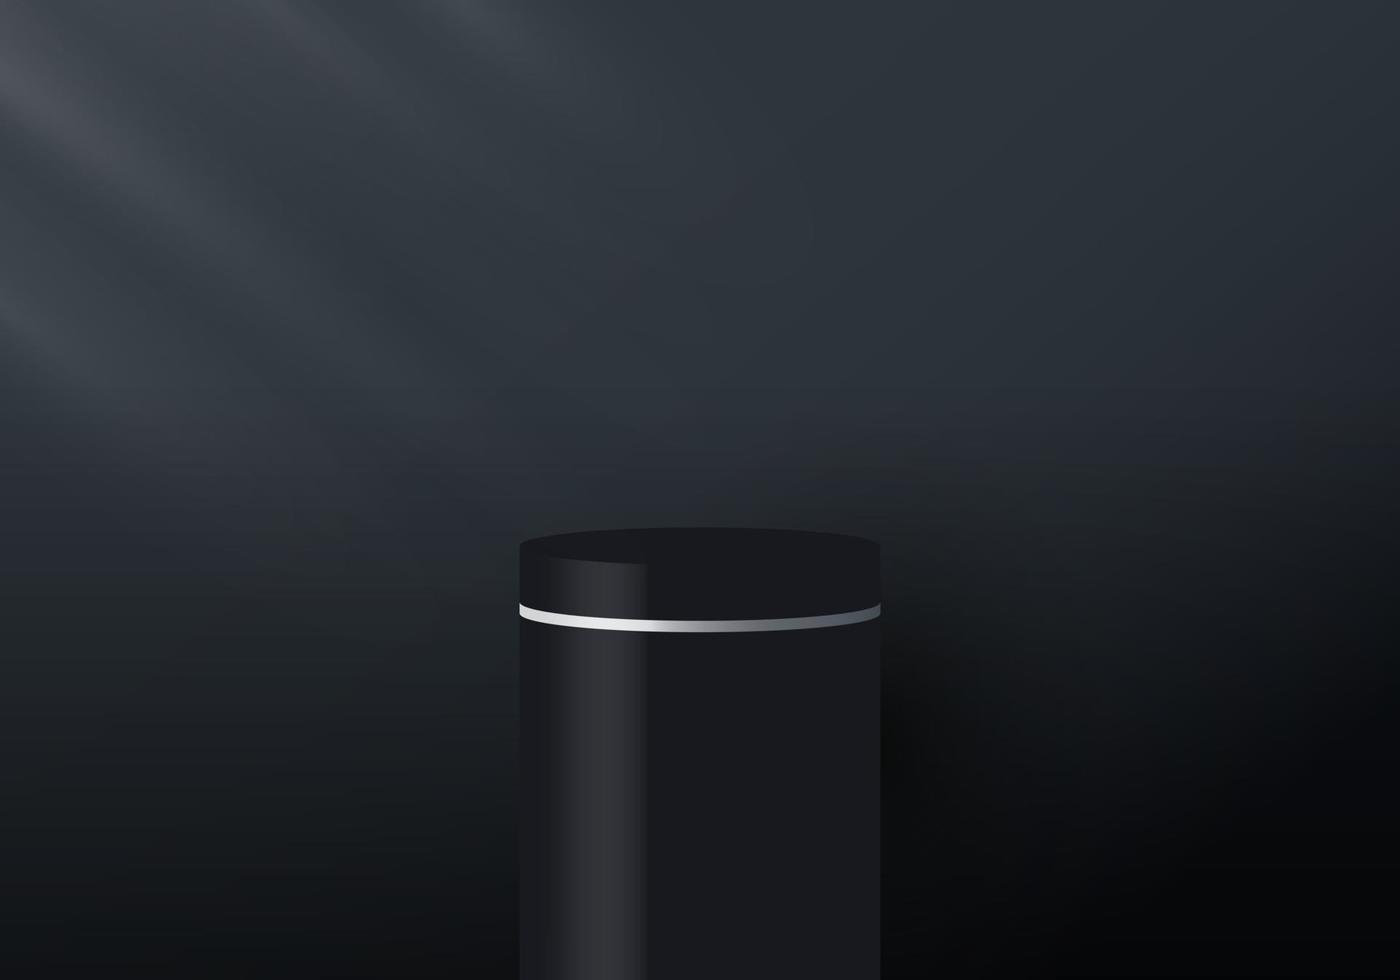 3D realistic black and white pedestal display on dark background with lighting vector